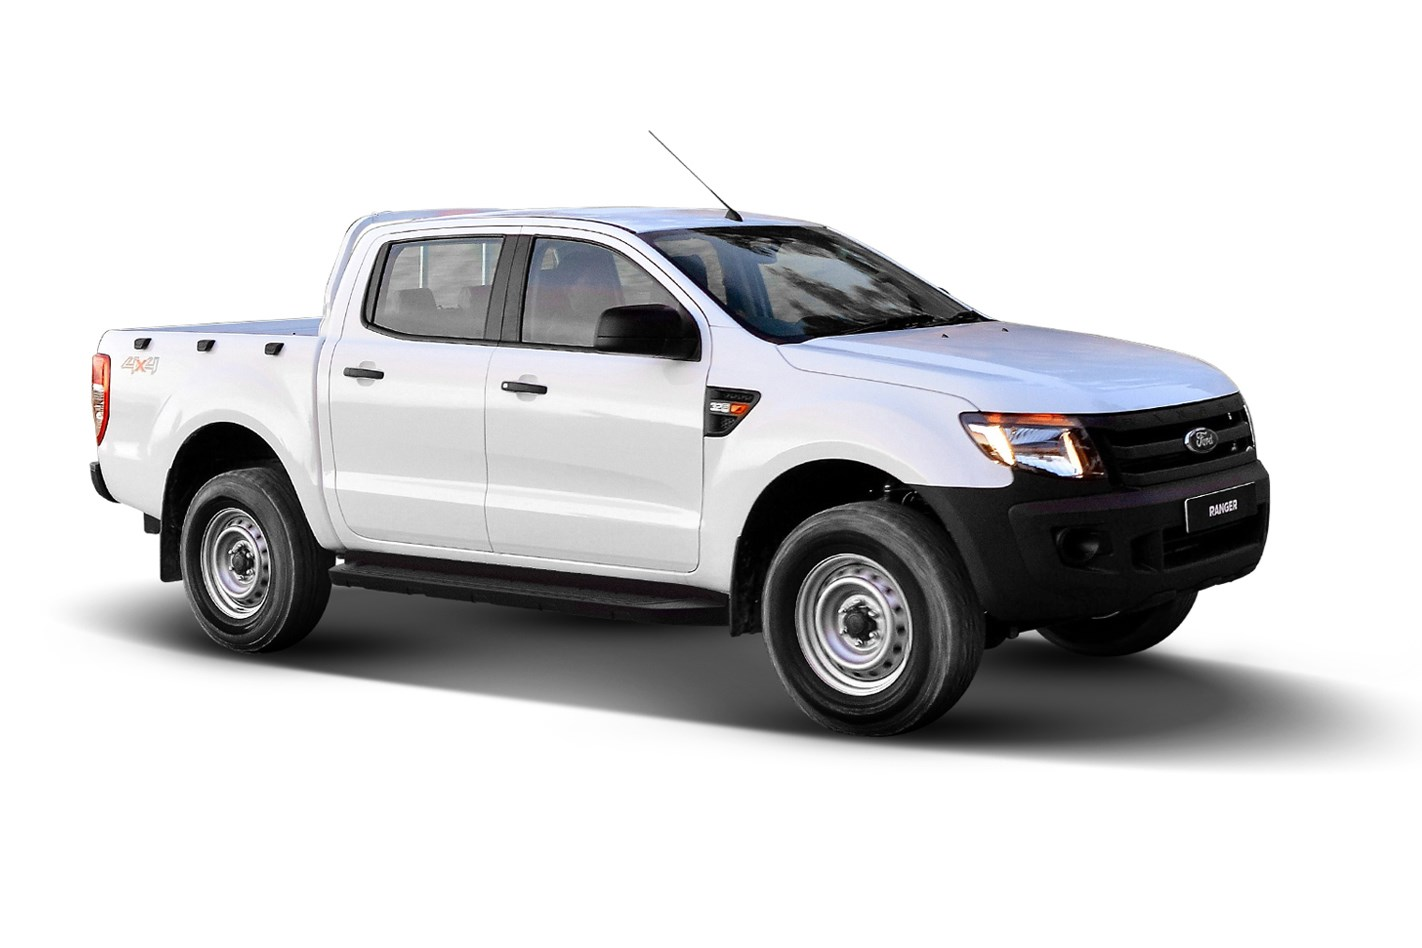 2015 ford ranger xlt 3 2 4x4 3 2l 5cyl diesel turbocharged automatic ute